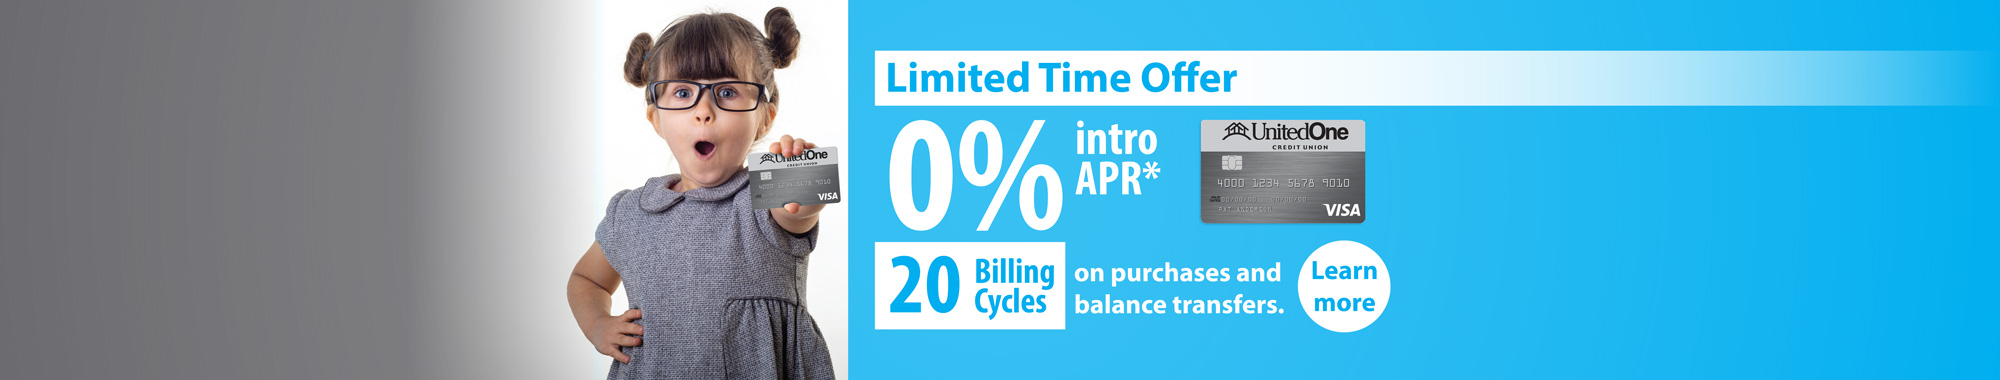 Lower rate, for a longer period. Learn more about this limited time offer.